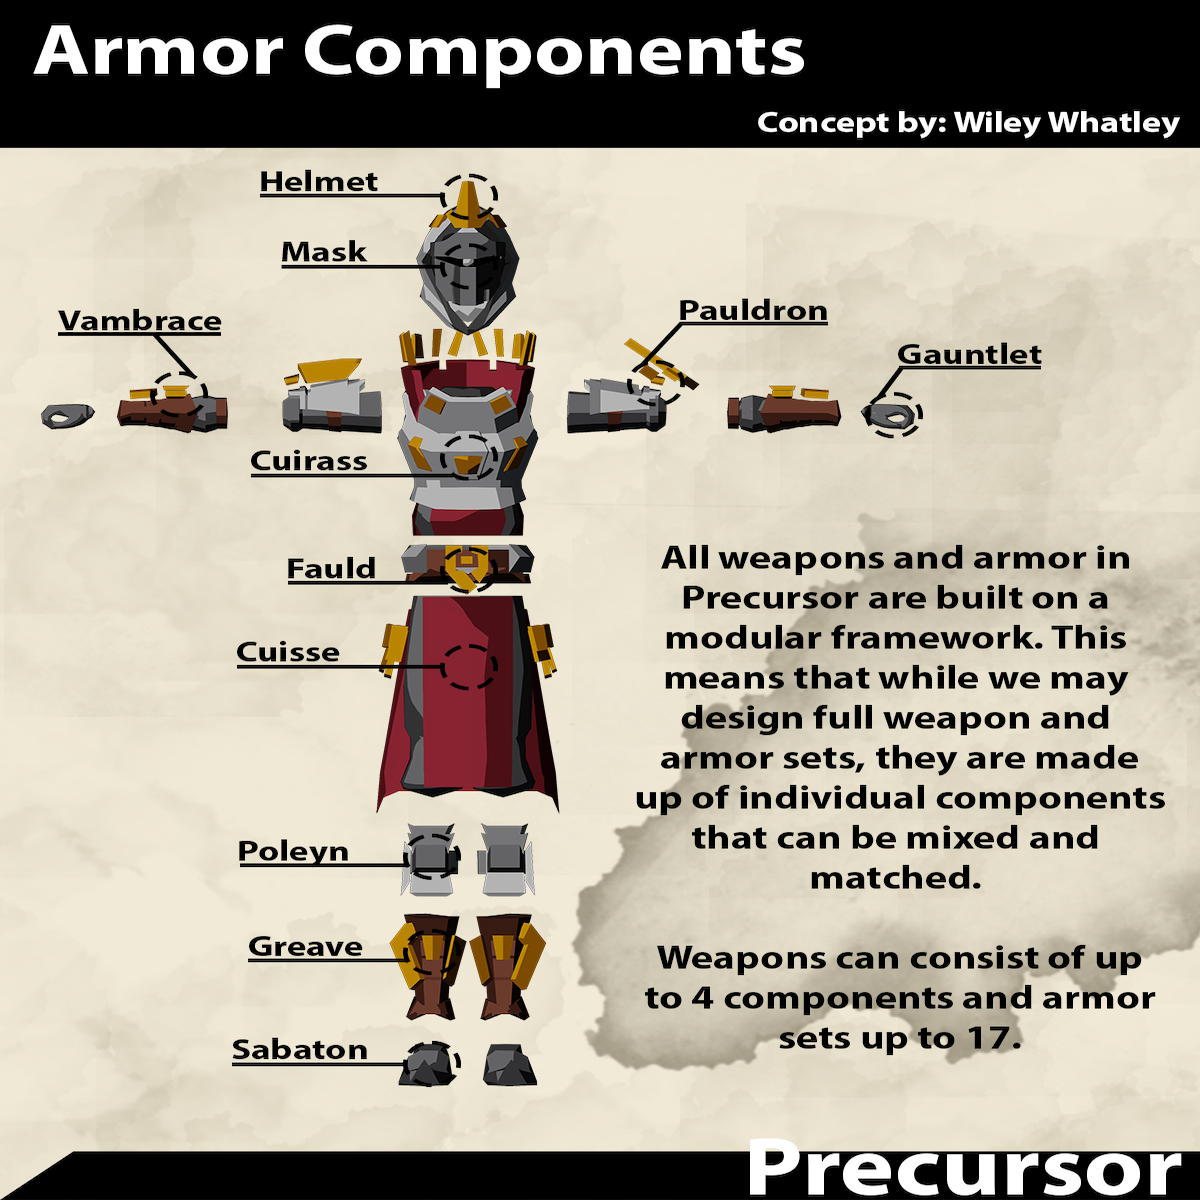 armor components